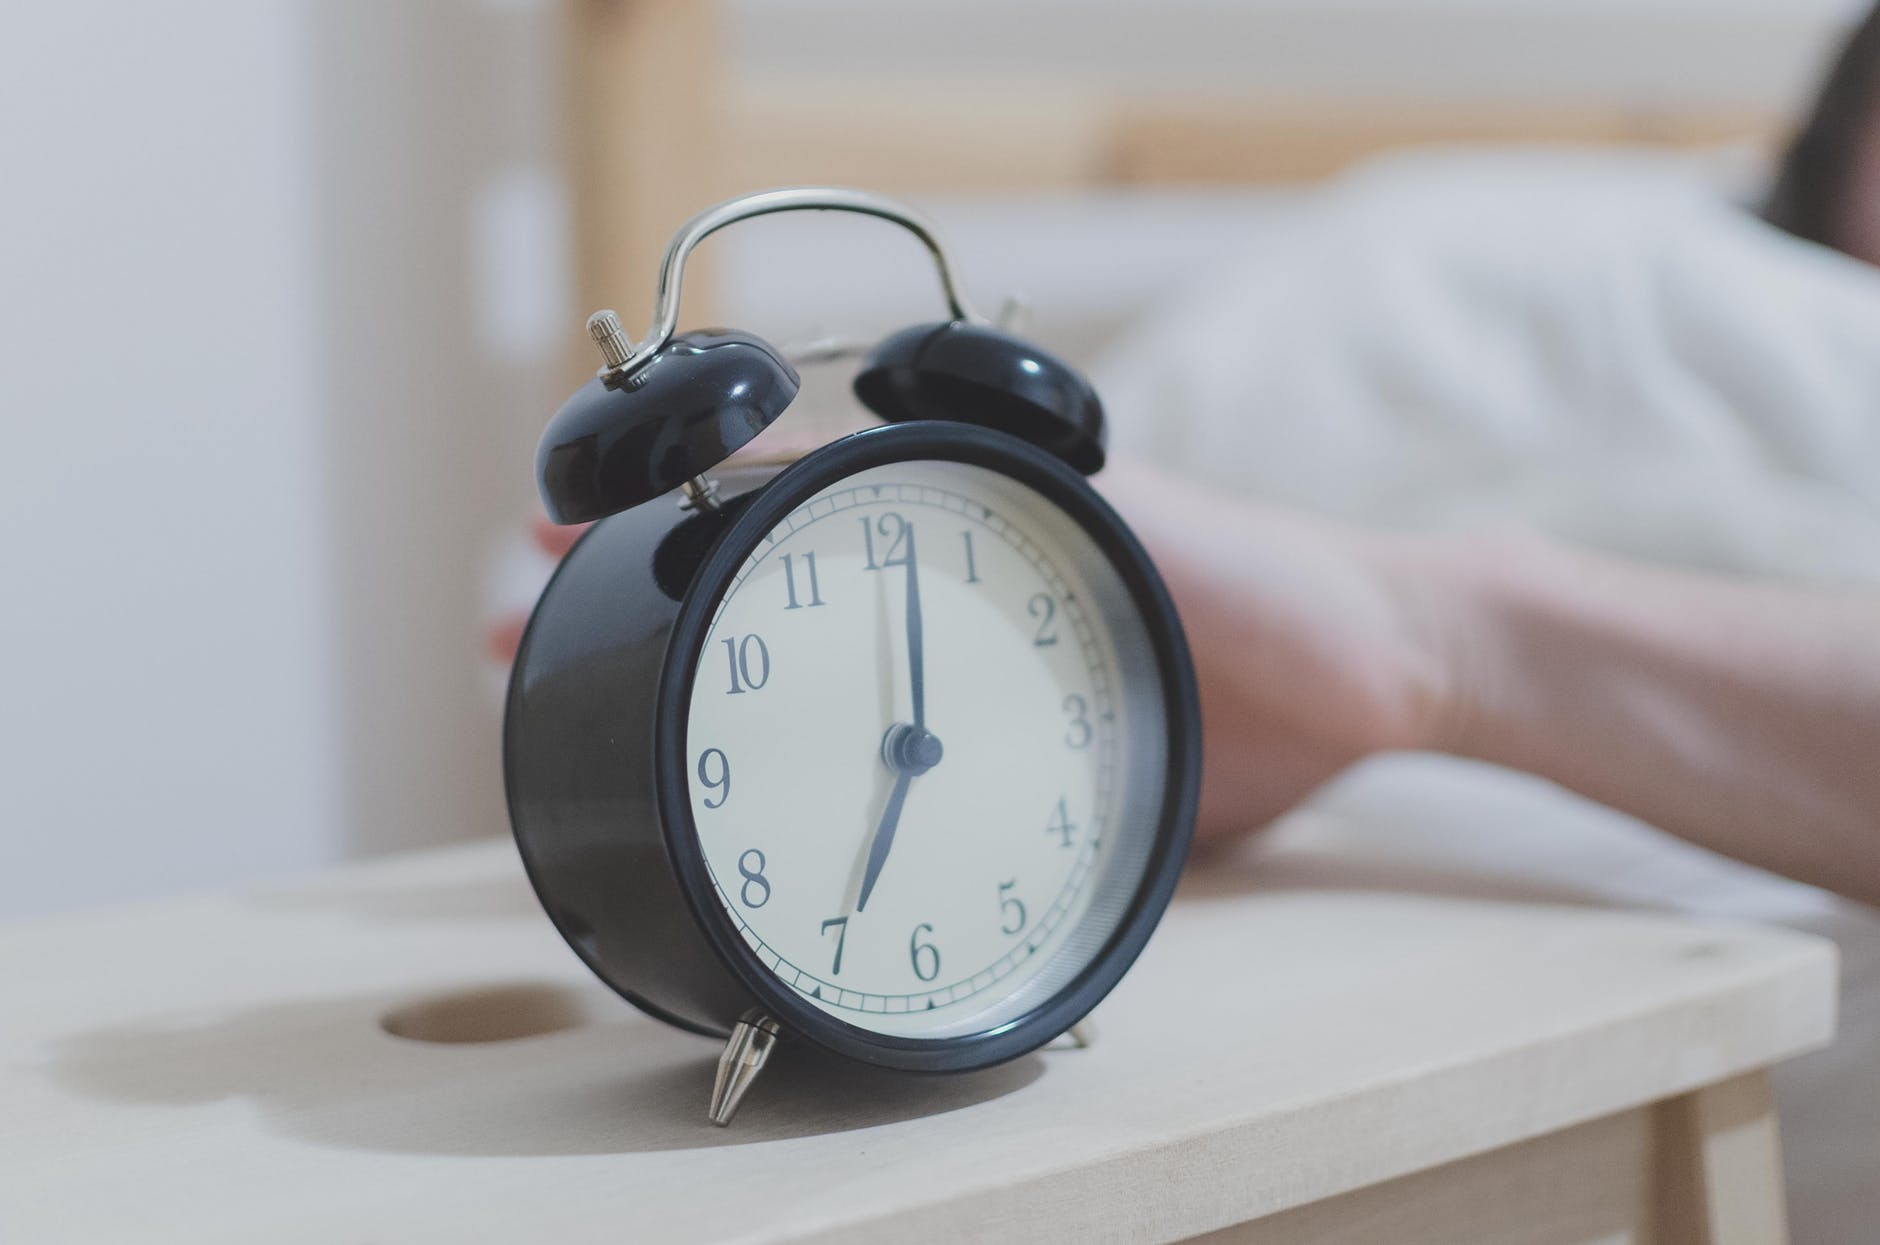 5 Alarm Clock Apps to Get You Out of Bed in the Morning